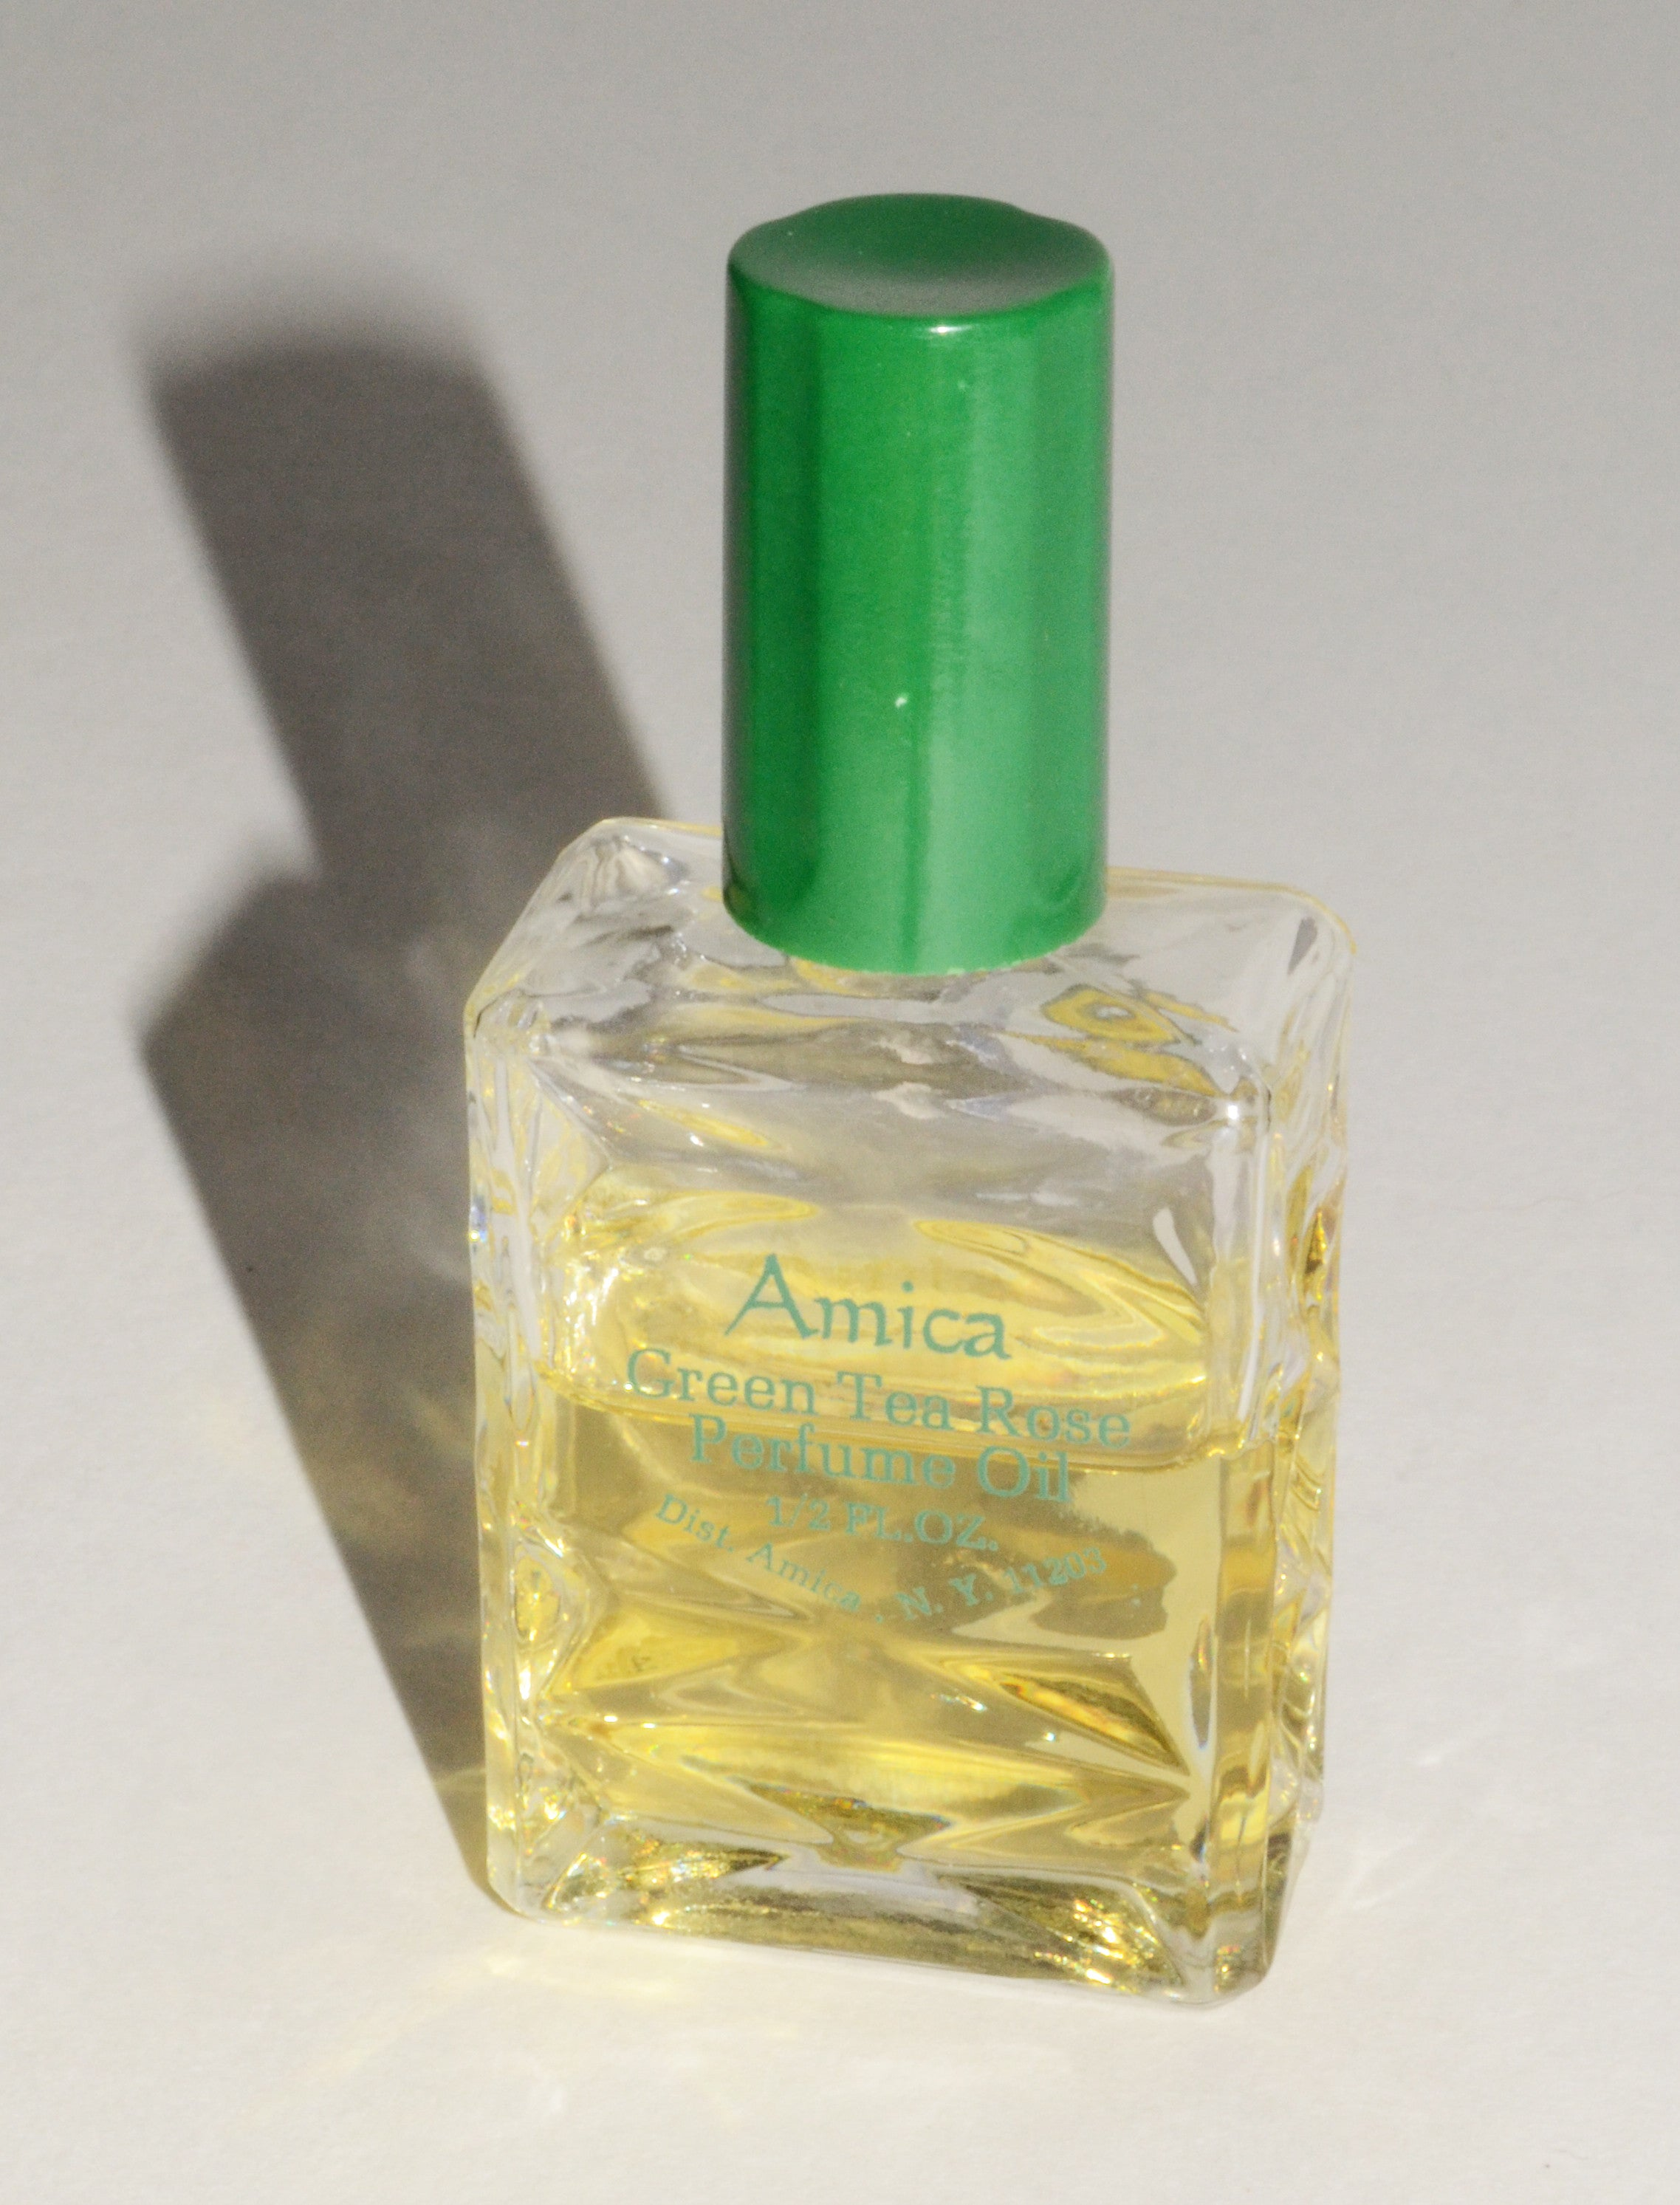 Vintage Green Tea Rose Perfume Oil By Amica